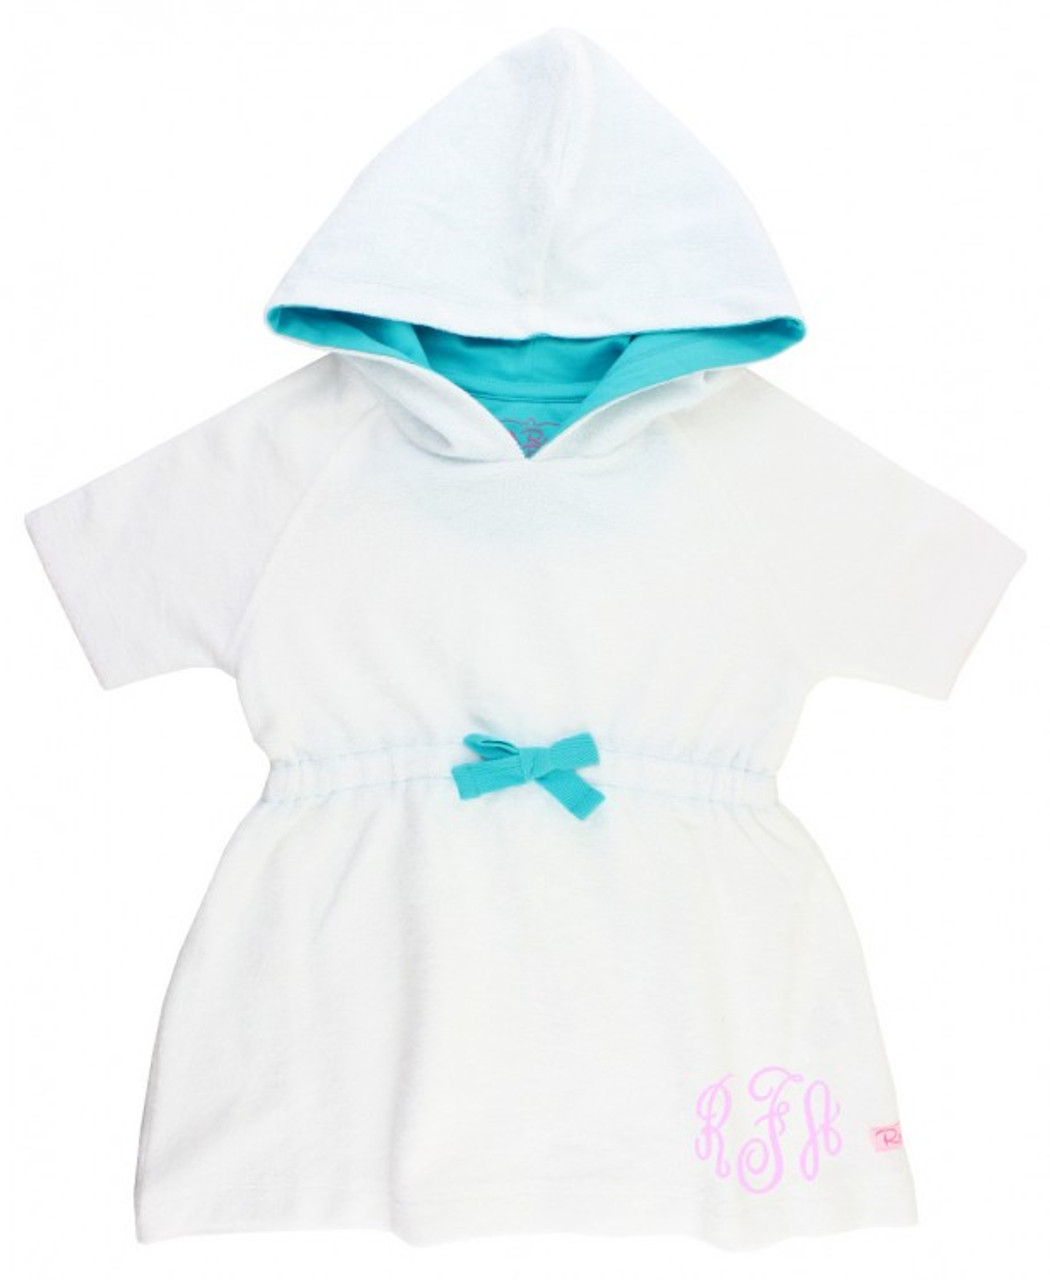 RuffleButts White Terry Cover-Up - Size 12-18 months